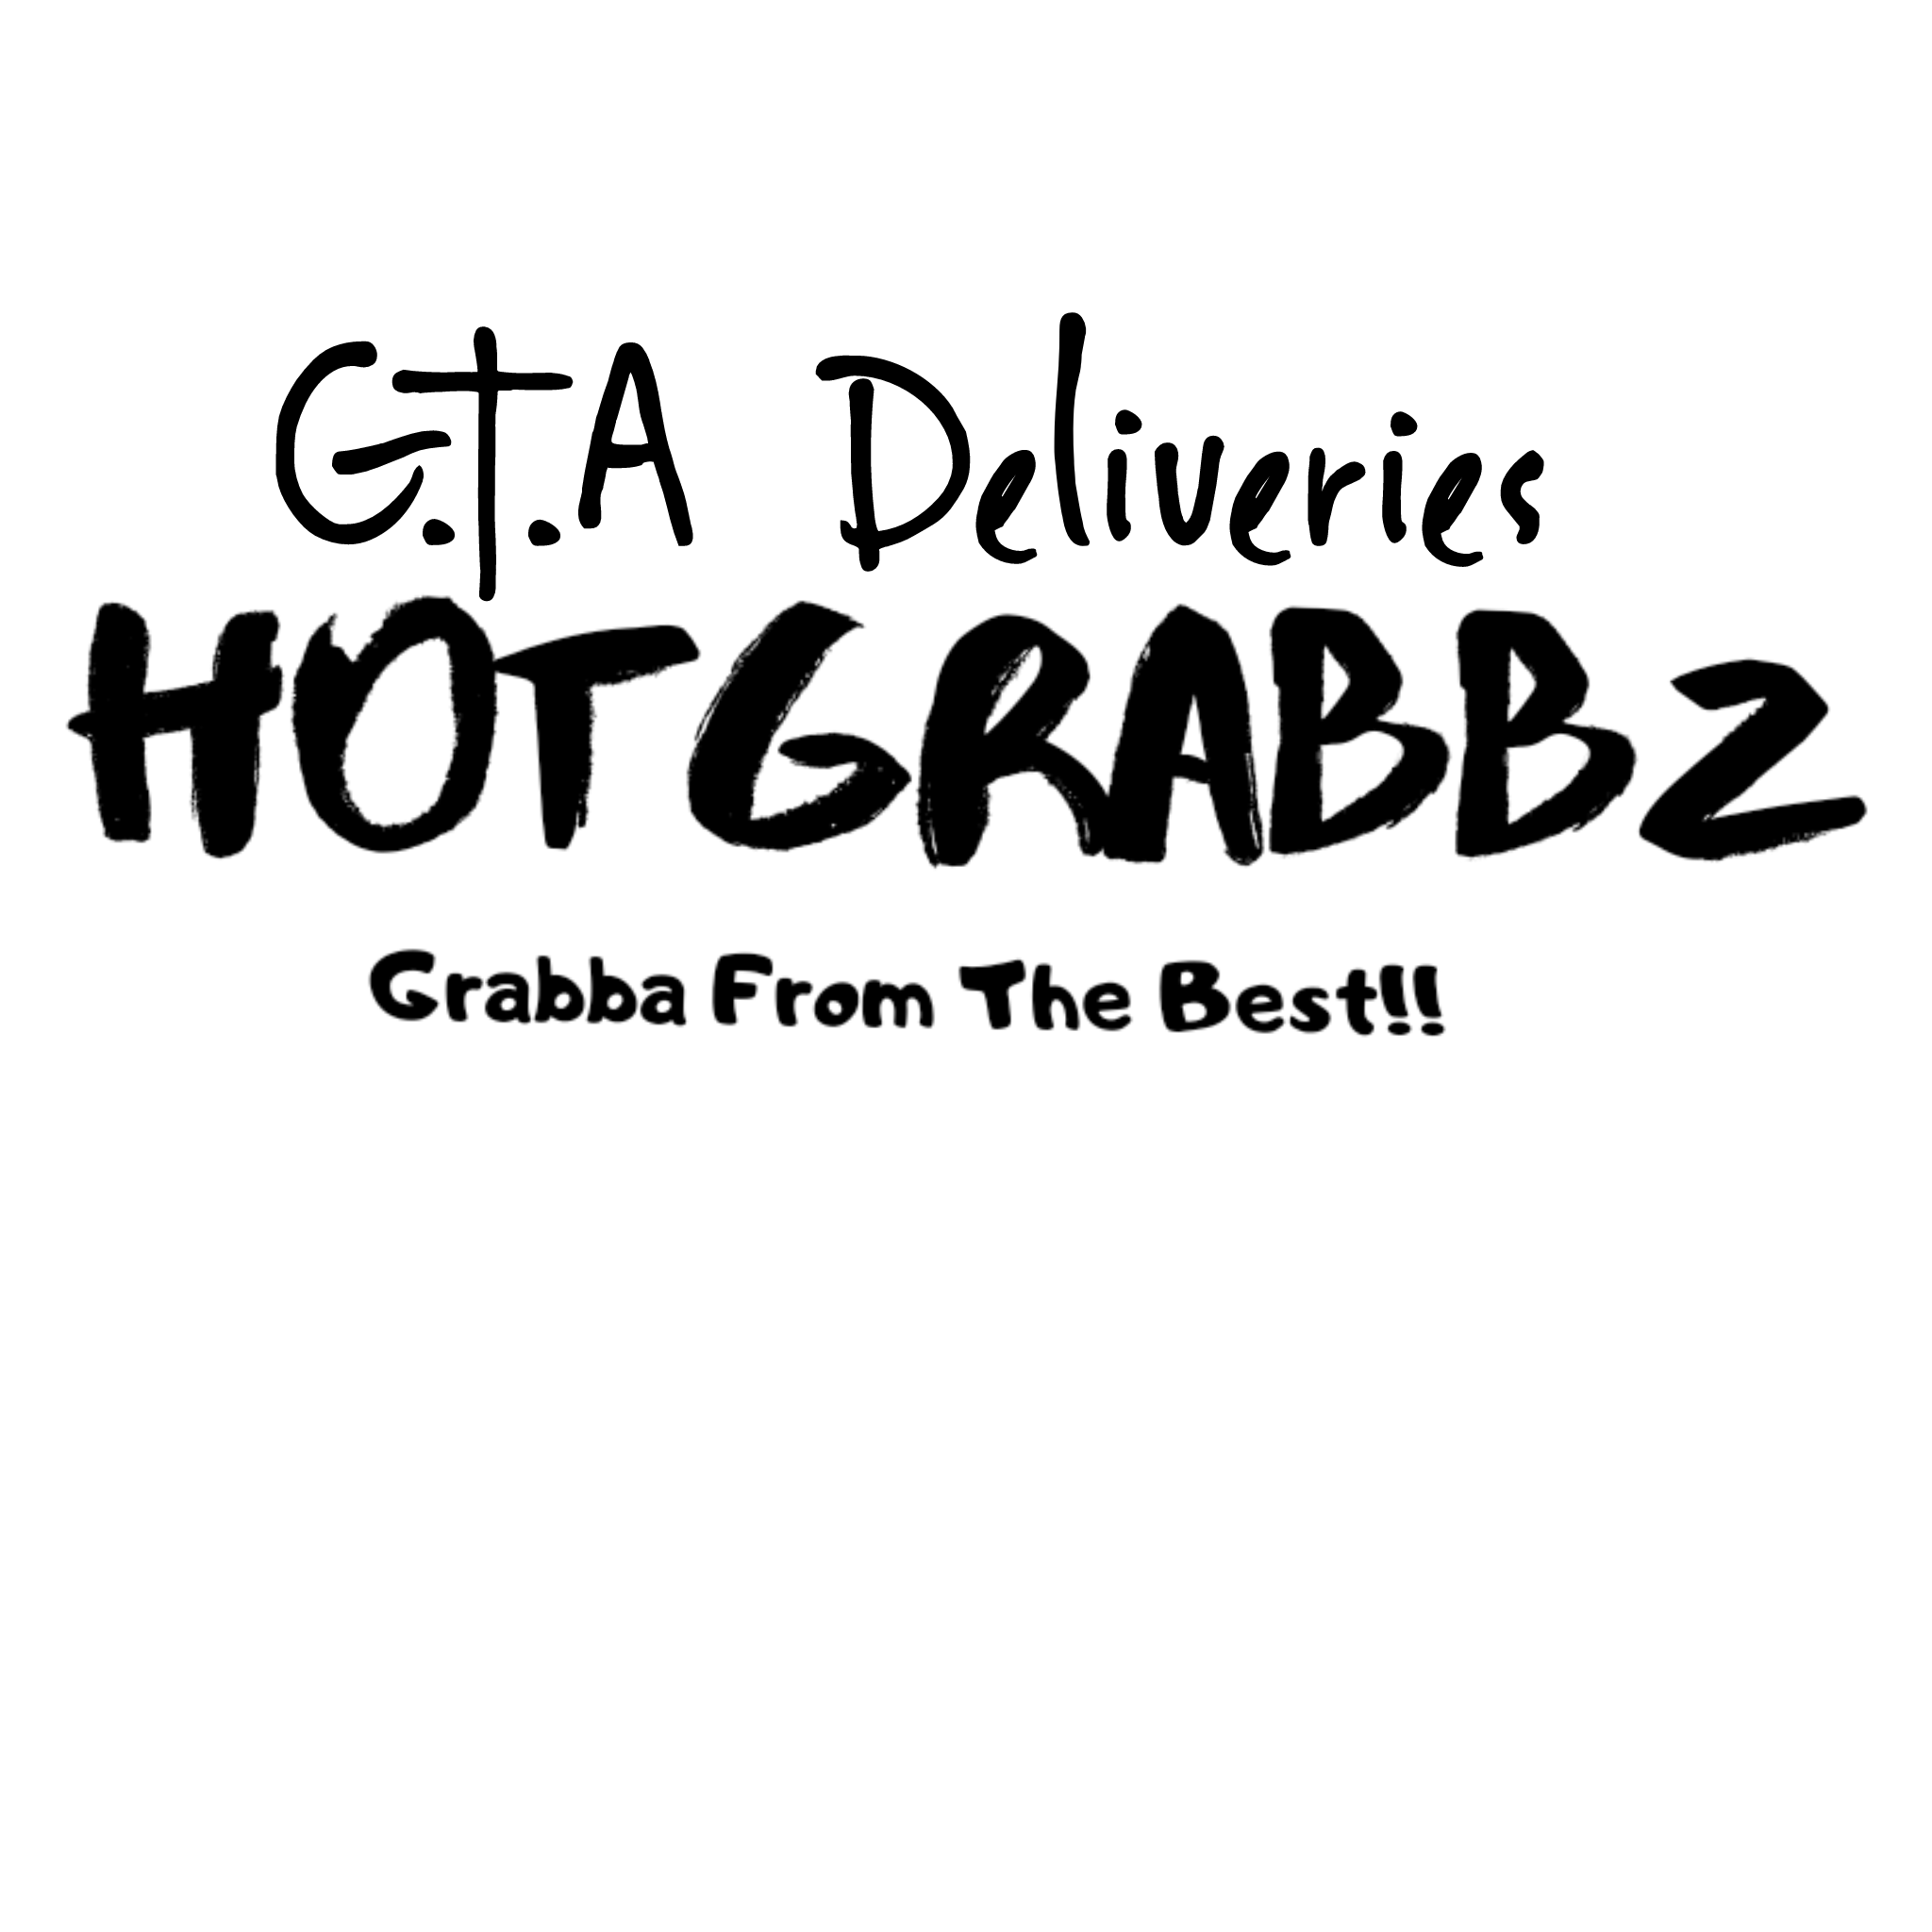 Grabba Deliveries In The G.T.A